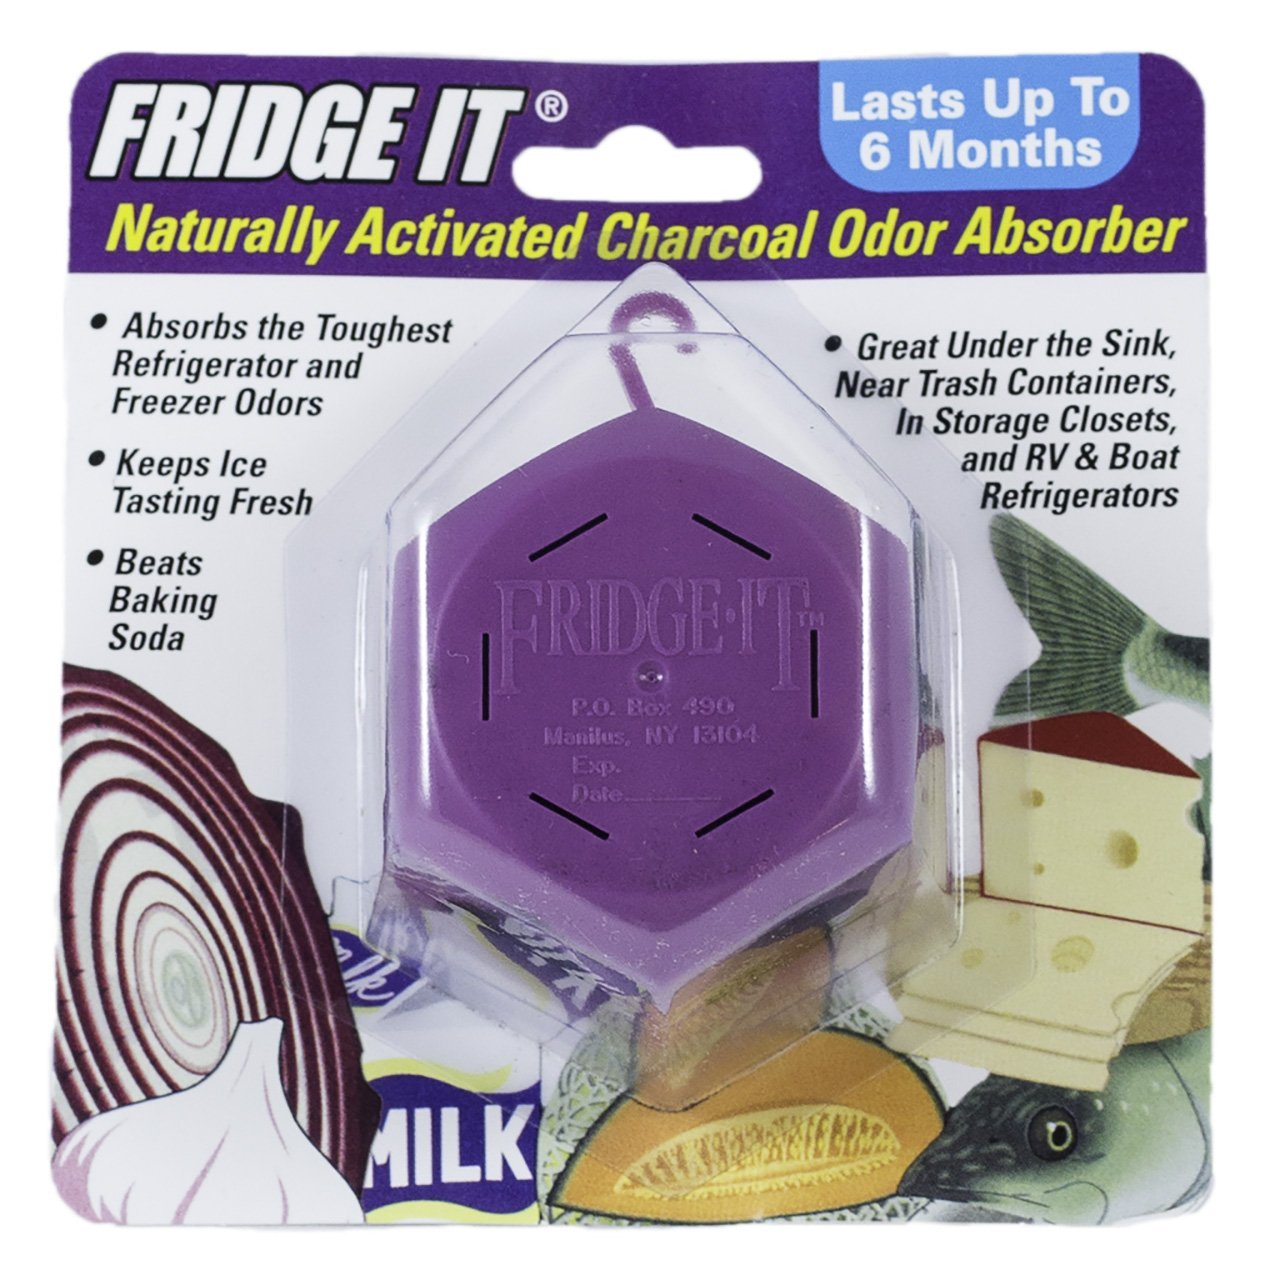 Innofresh Fridge-It Cube - Activated Charcoal Odor Absorber - 6 Pack. The Natural Fridge Deodorizer and Air Freshener. Fragrance Free, Lasts up to 6-Months